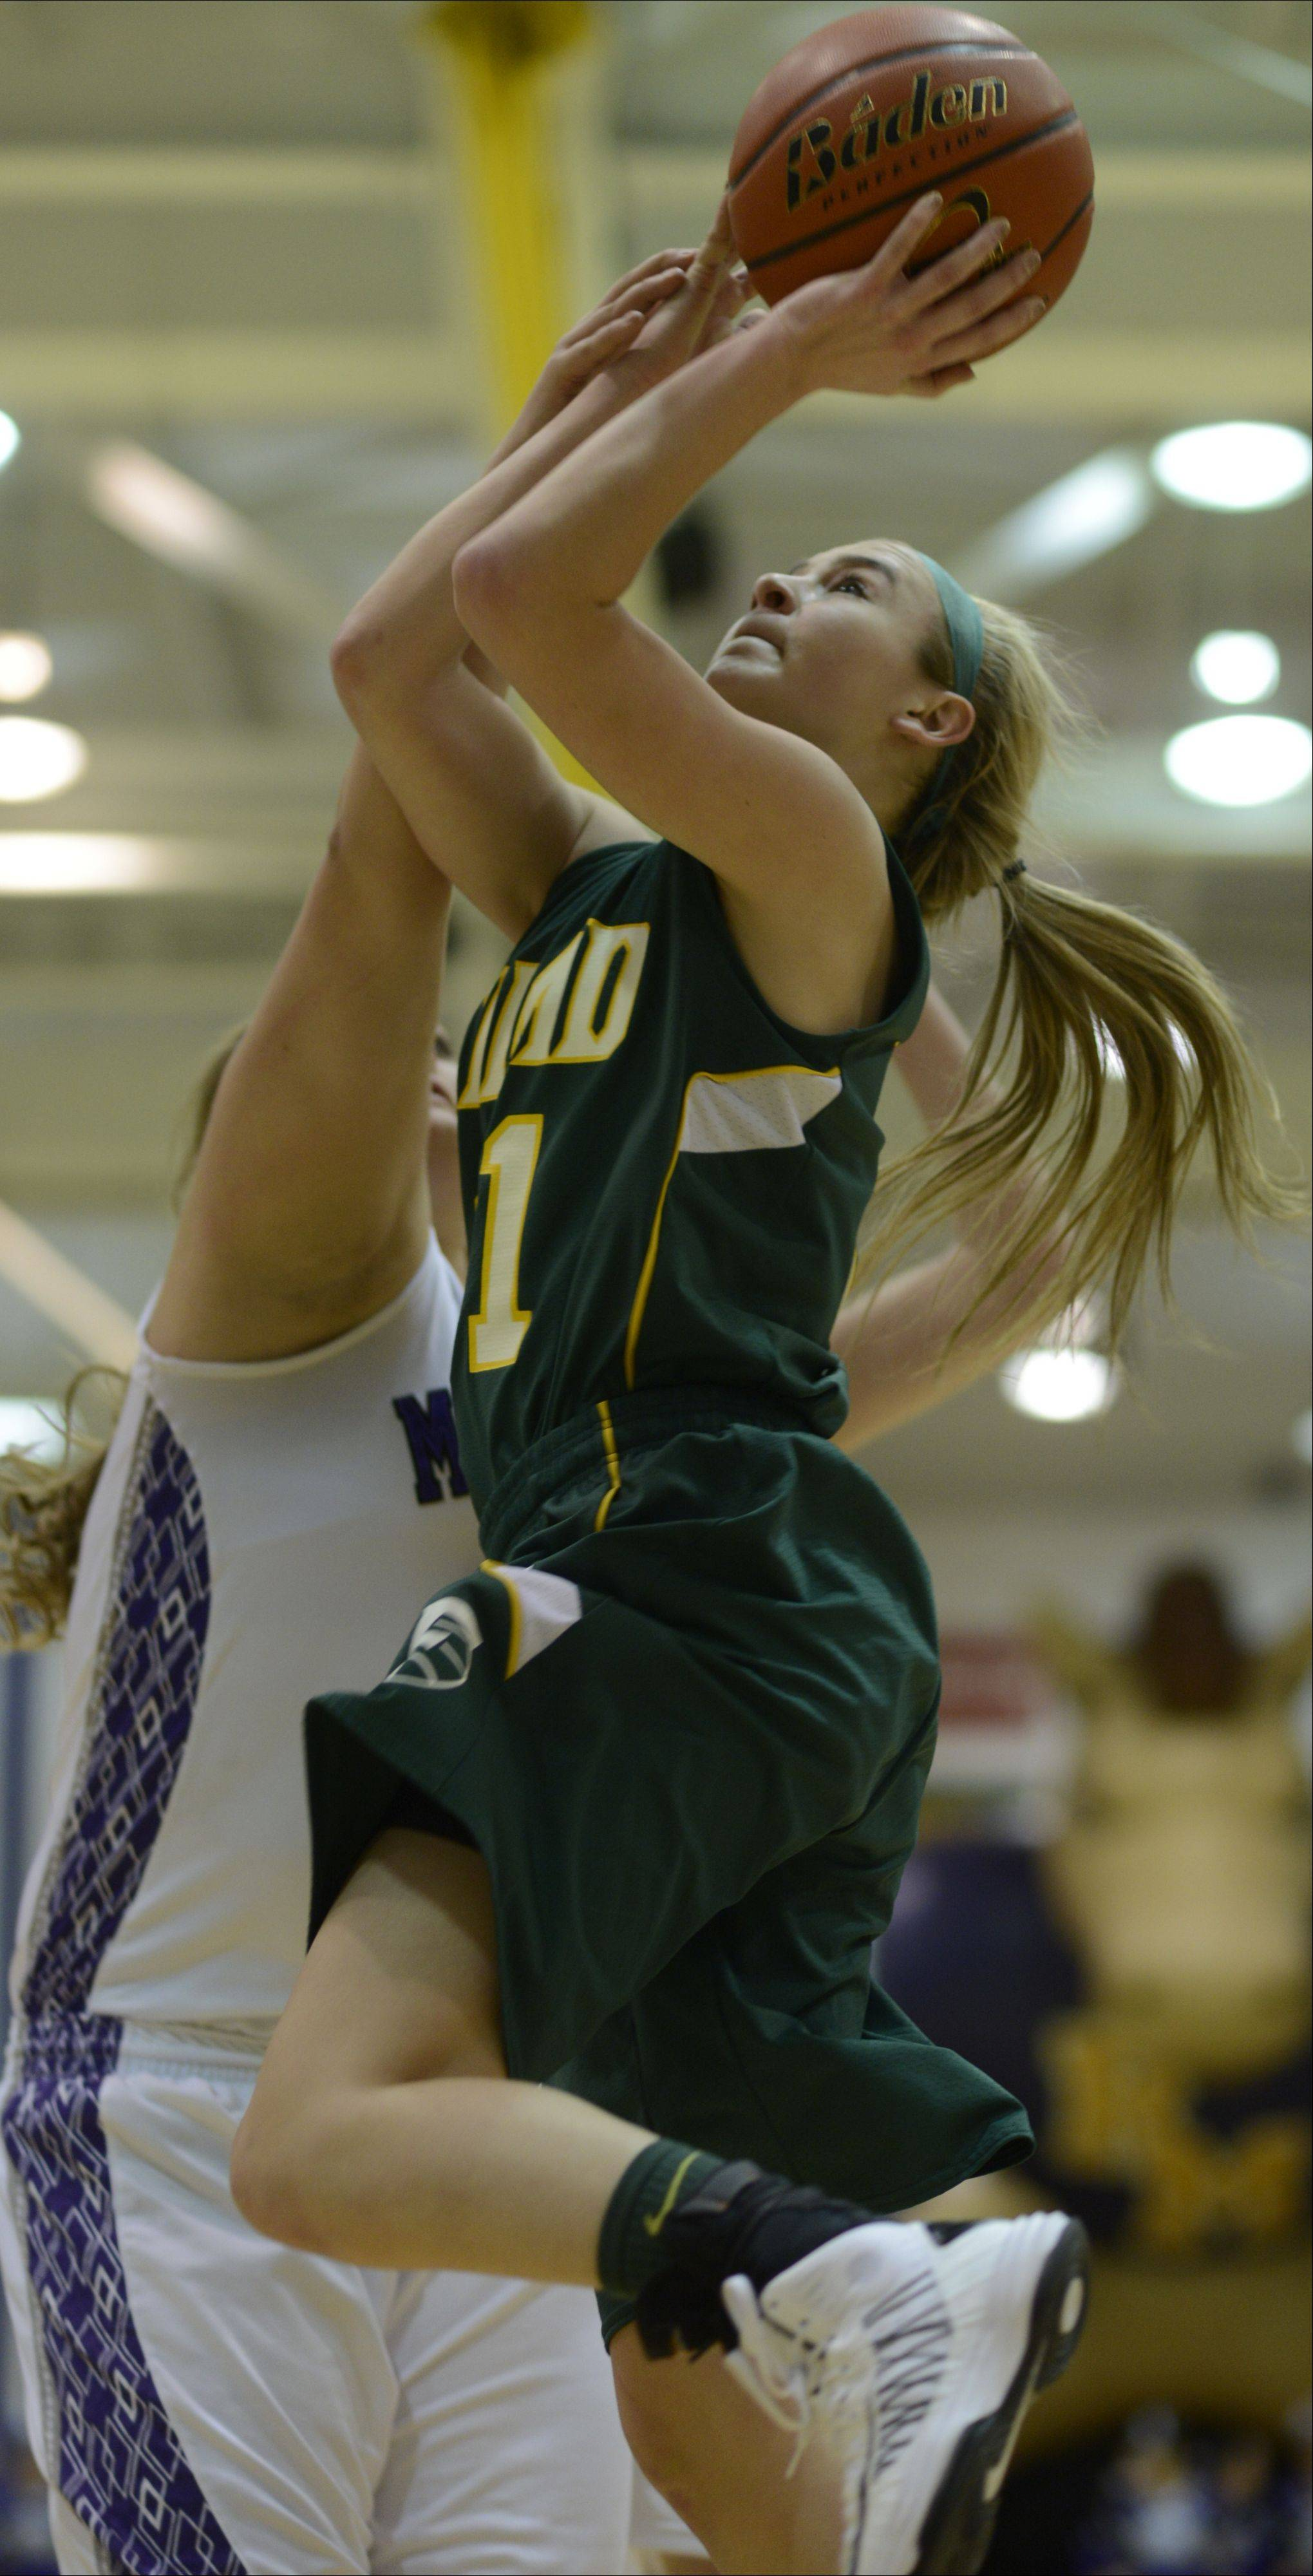 Images from the Rolling Meadows vs. Fremd girls MLS championship basketball game on Wednesday, February 6th, in Rolling Meadows